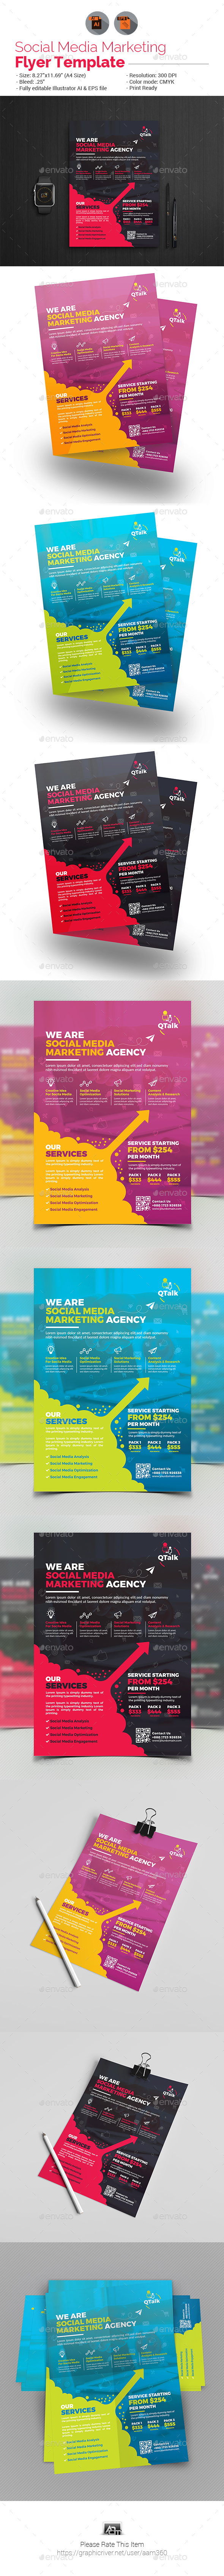 Social Media Marketing Flyer V2 - Corporate Flyers